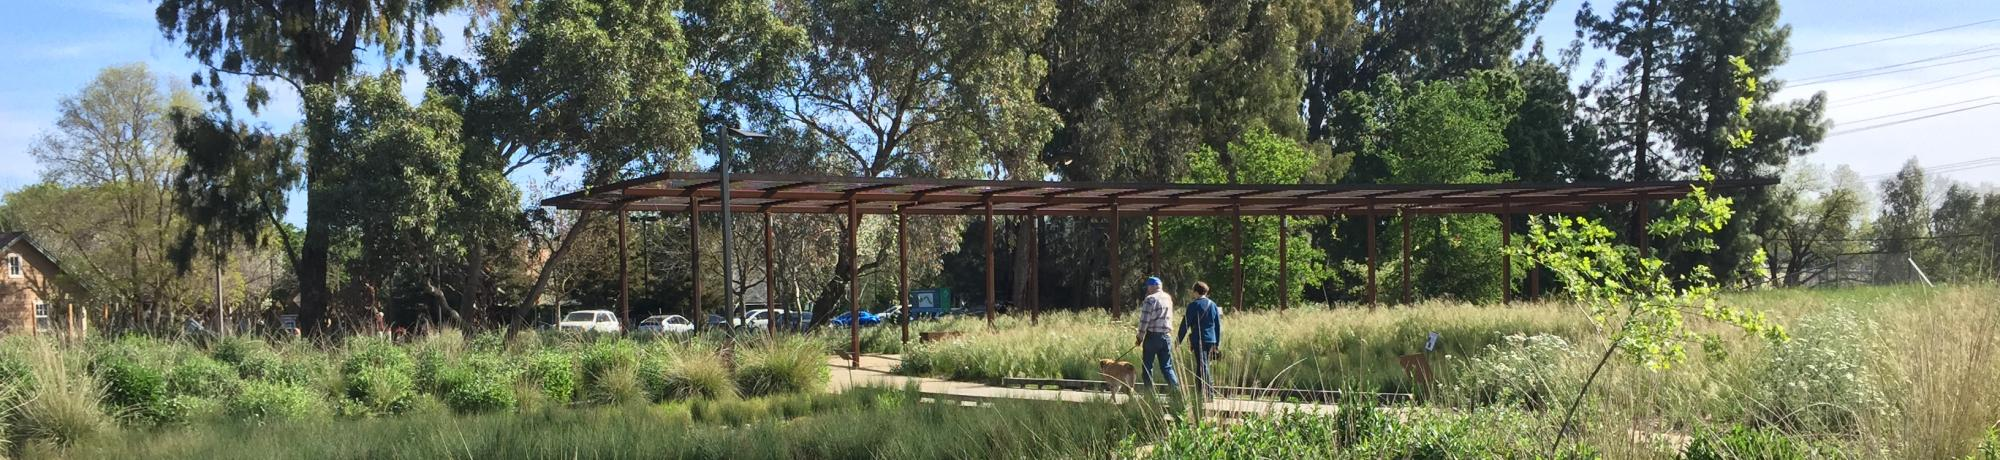 Image of the UC Davis Arboretum GATEway Garden.